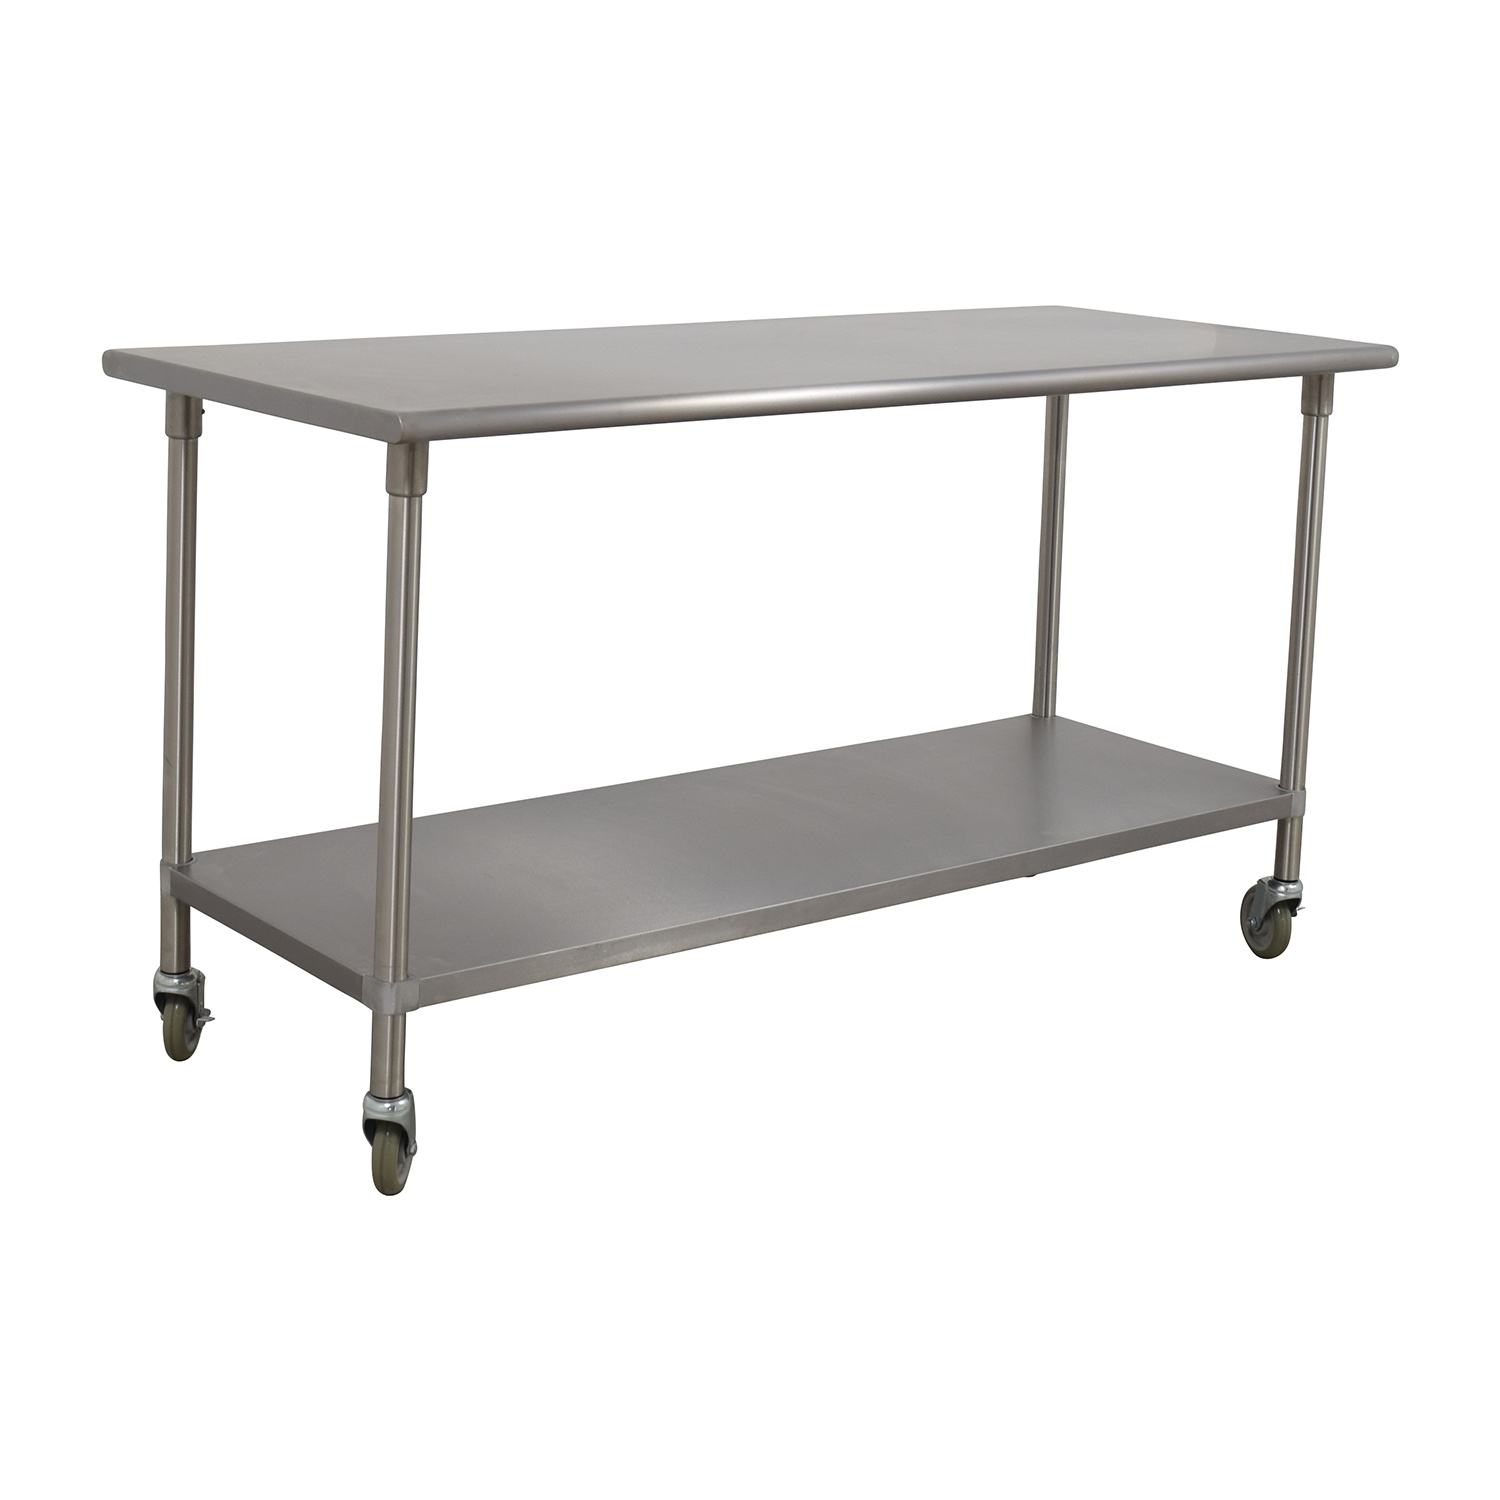 Bowery Kitchen Bowery Kitchen Stainless Steel Table used